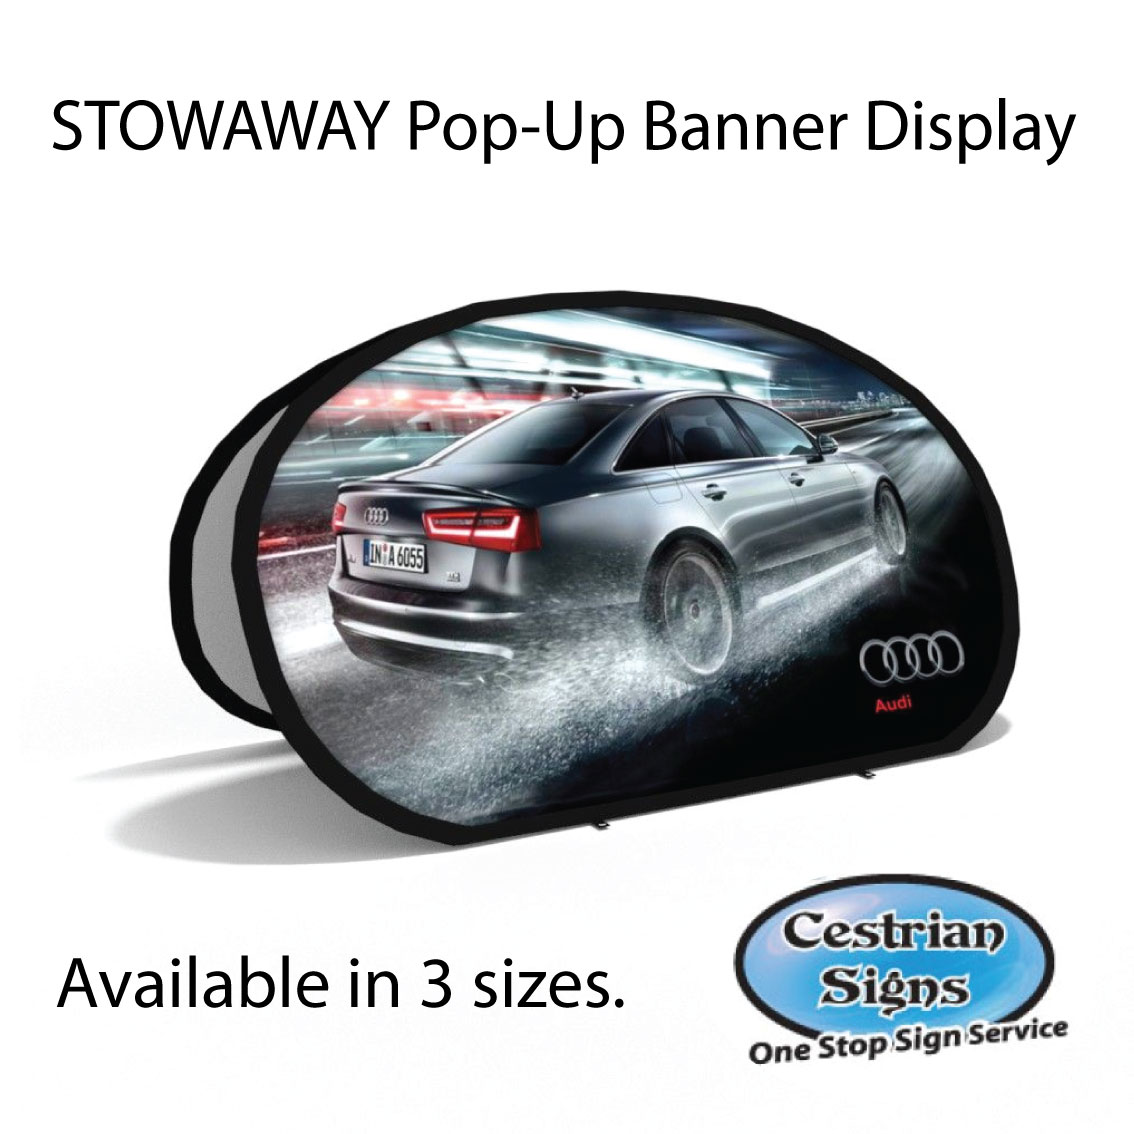 Shapped Pop-Up Displays